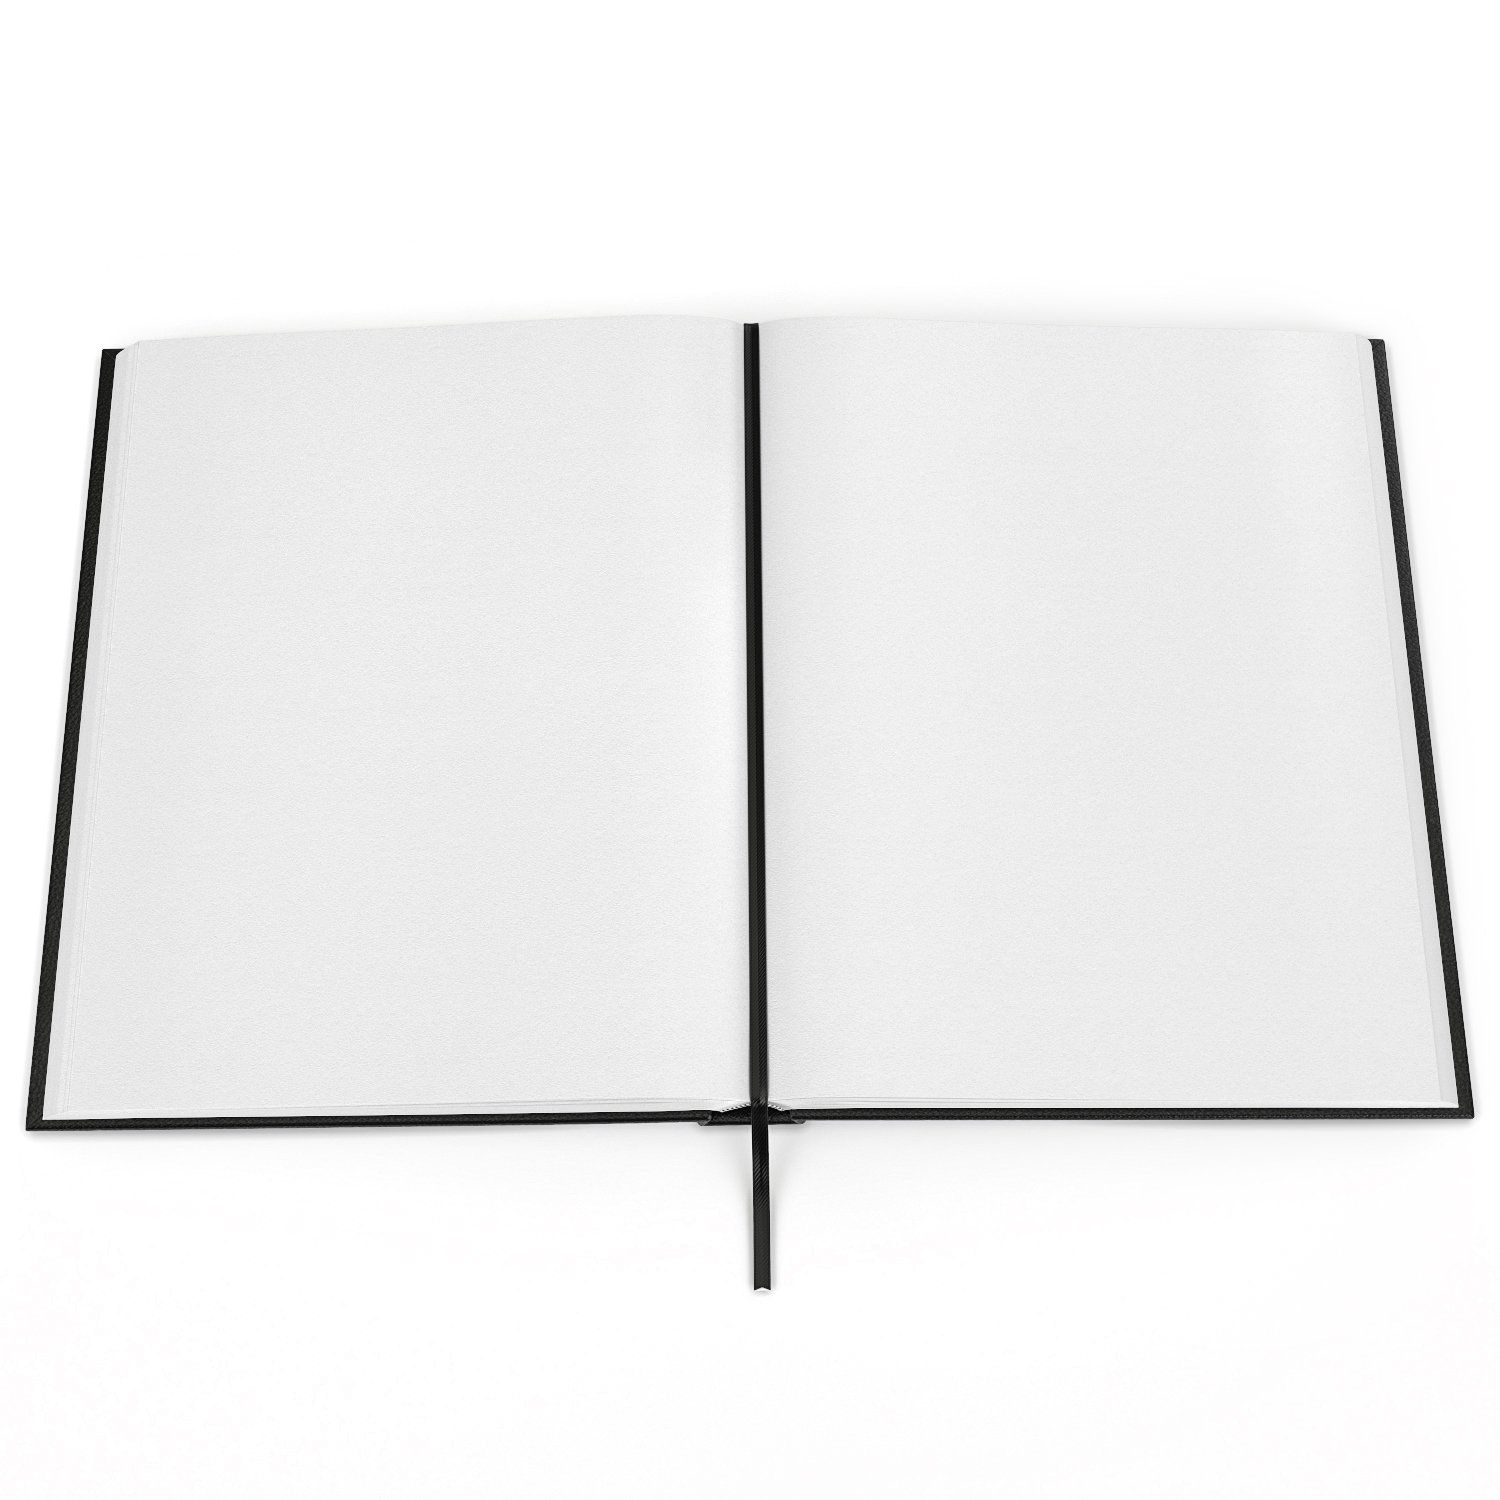 Arteza 8 5x11 Drawing Book Hardbound 80lb 130g 100 Sheets 2 Pack You Can Get More Details By Clicking On The Image Hardbound Arteza Journal Inspiration Diy